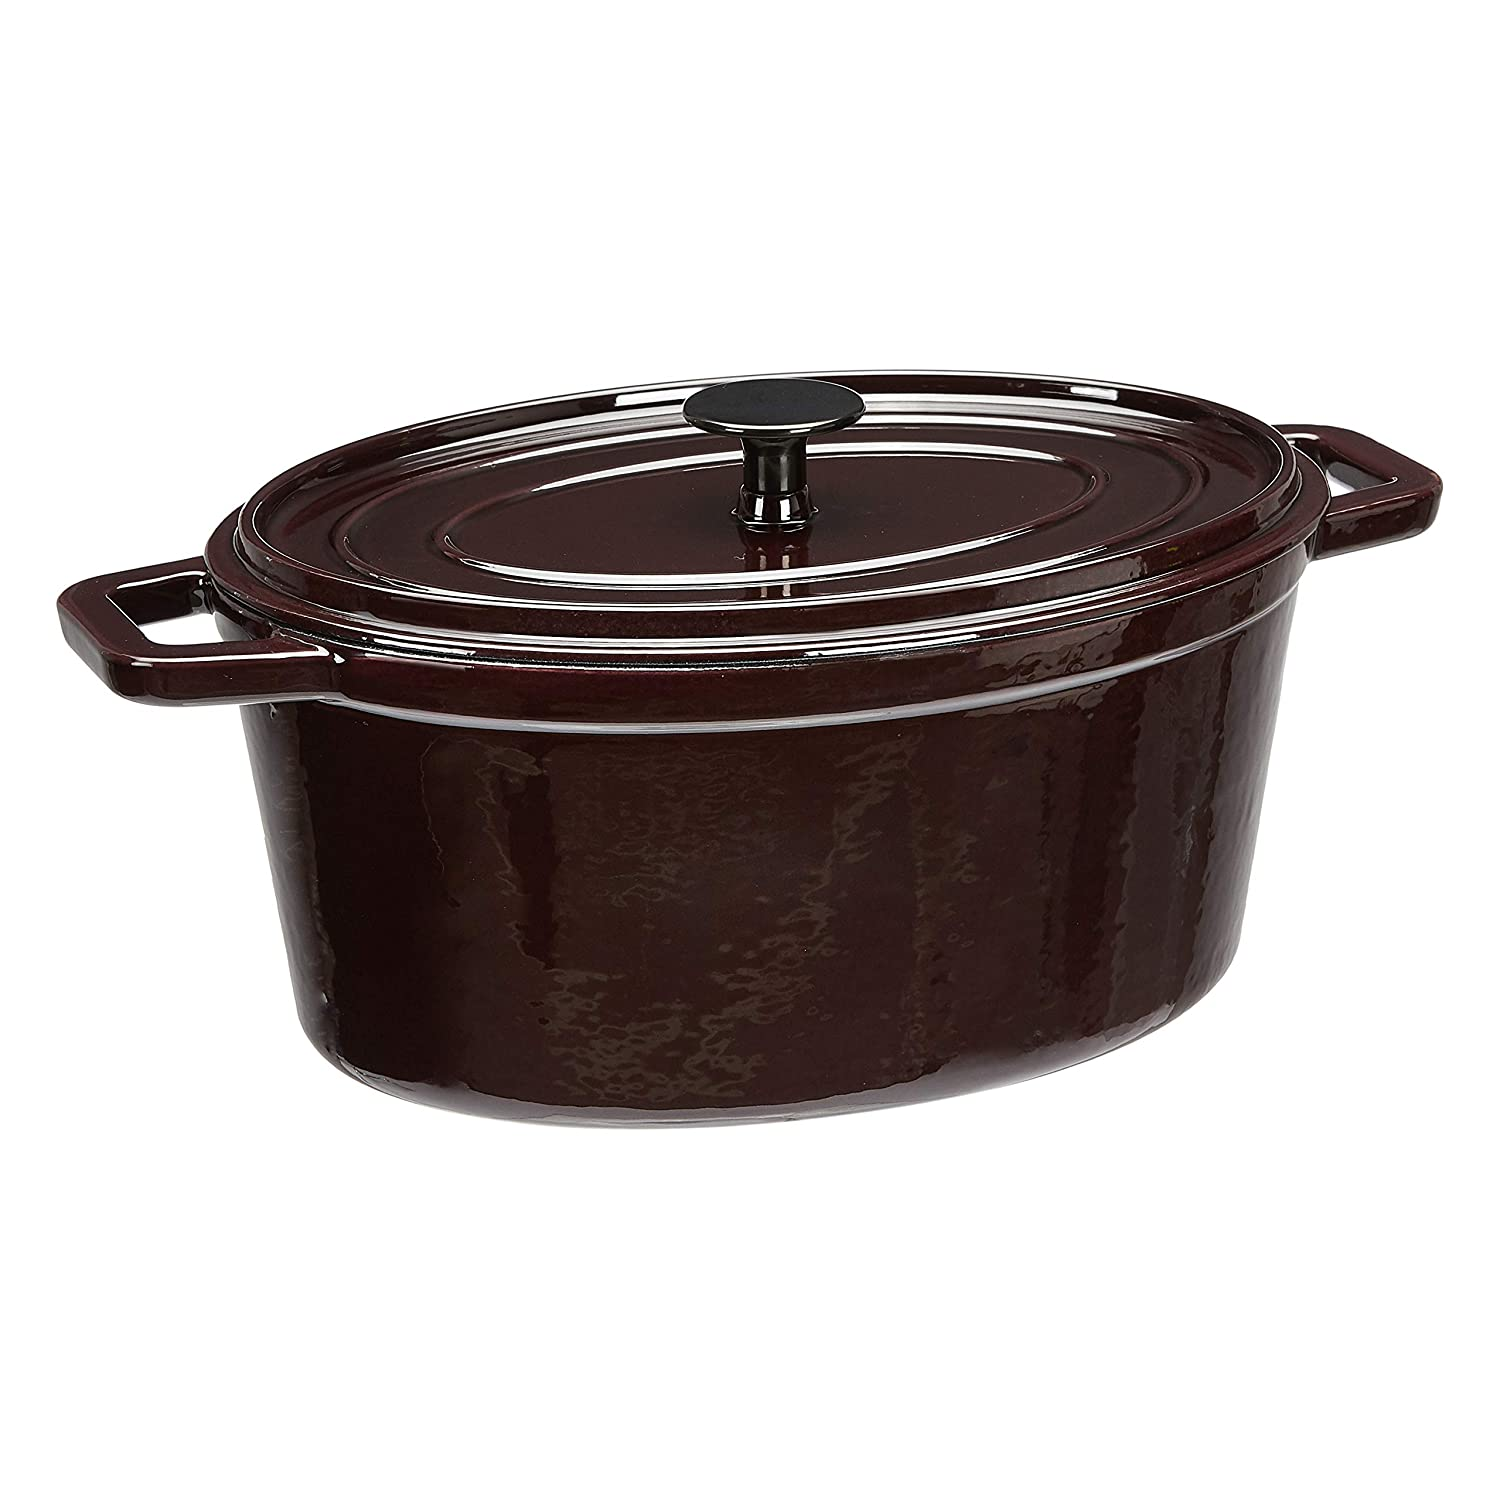 AmazonBasics Z4715MR Premium Enameled Cast Iron Oval Dutch Oven, 6-Quart, Deep Cranberry